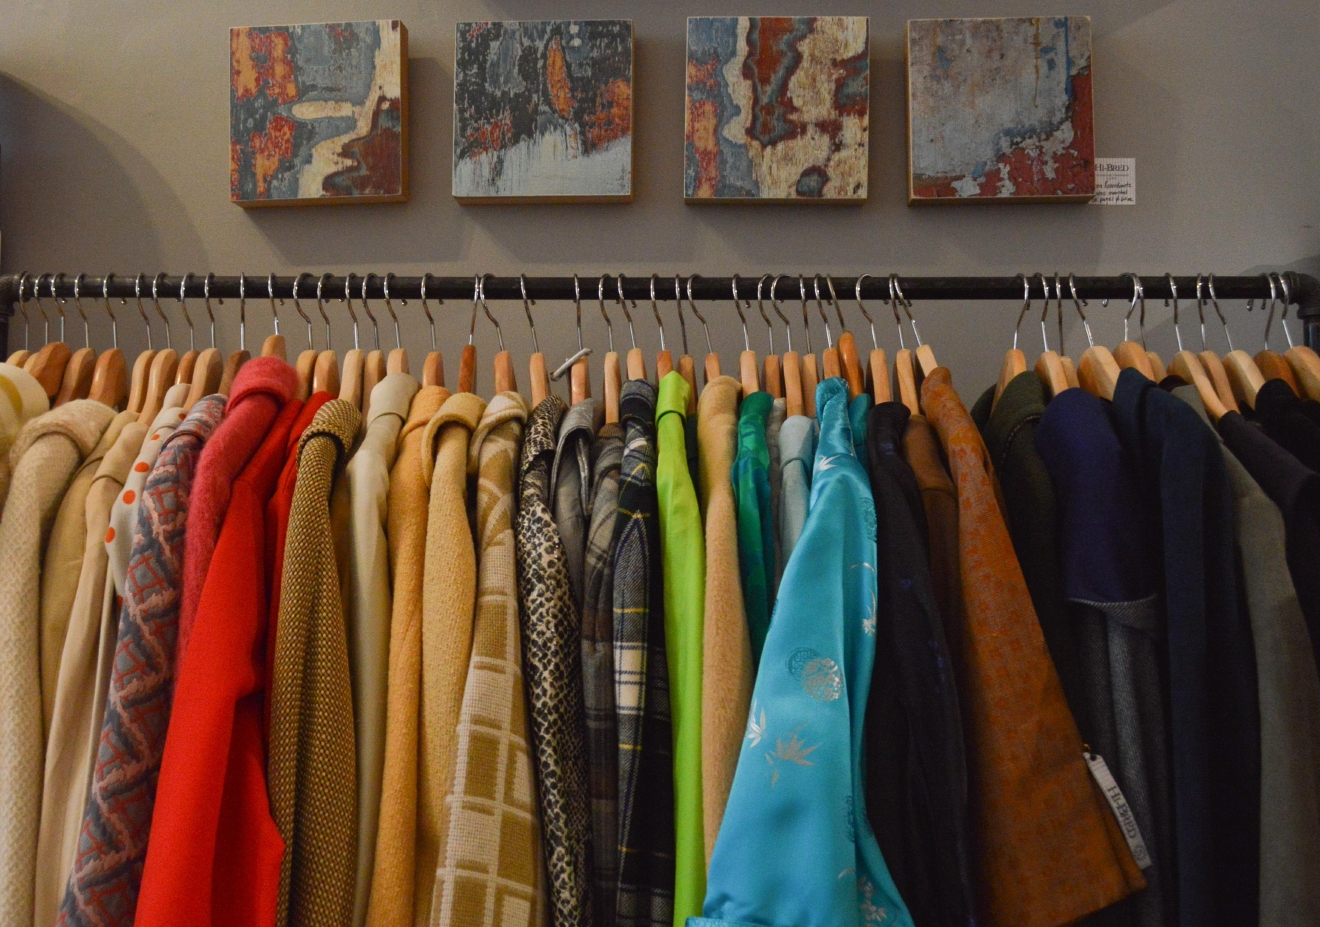 Hi-Bred is a boutique store specializing in both modern and vintage clothing in East Walnut Hills. Vinyl, housewares, jewelry, and other eclectic items are also available for purchase. ADDRESS: 2807 Woodburn Avenue, Cincinnati, OH 45206. / Image: Liliana Dillingham // Published: 11.29.16